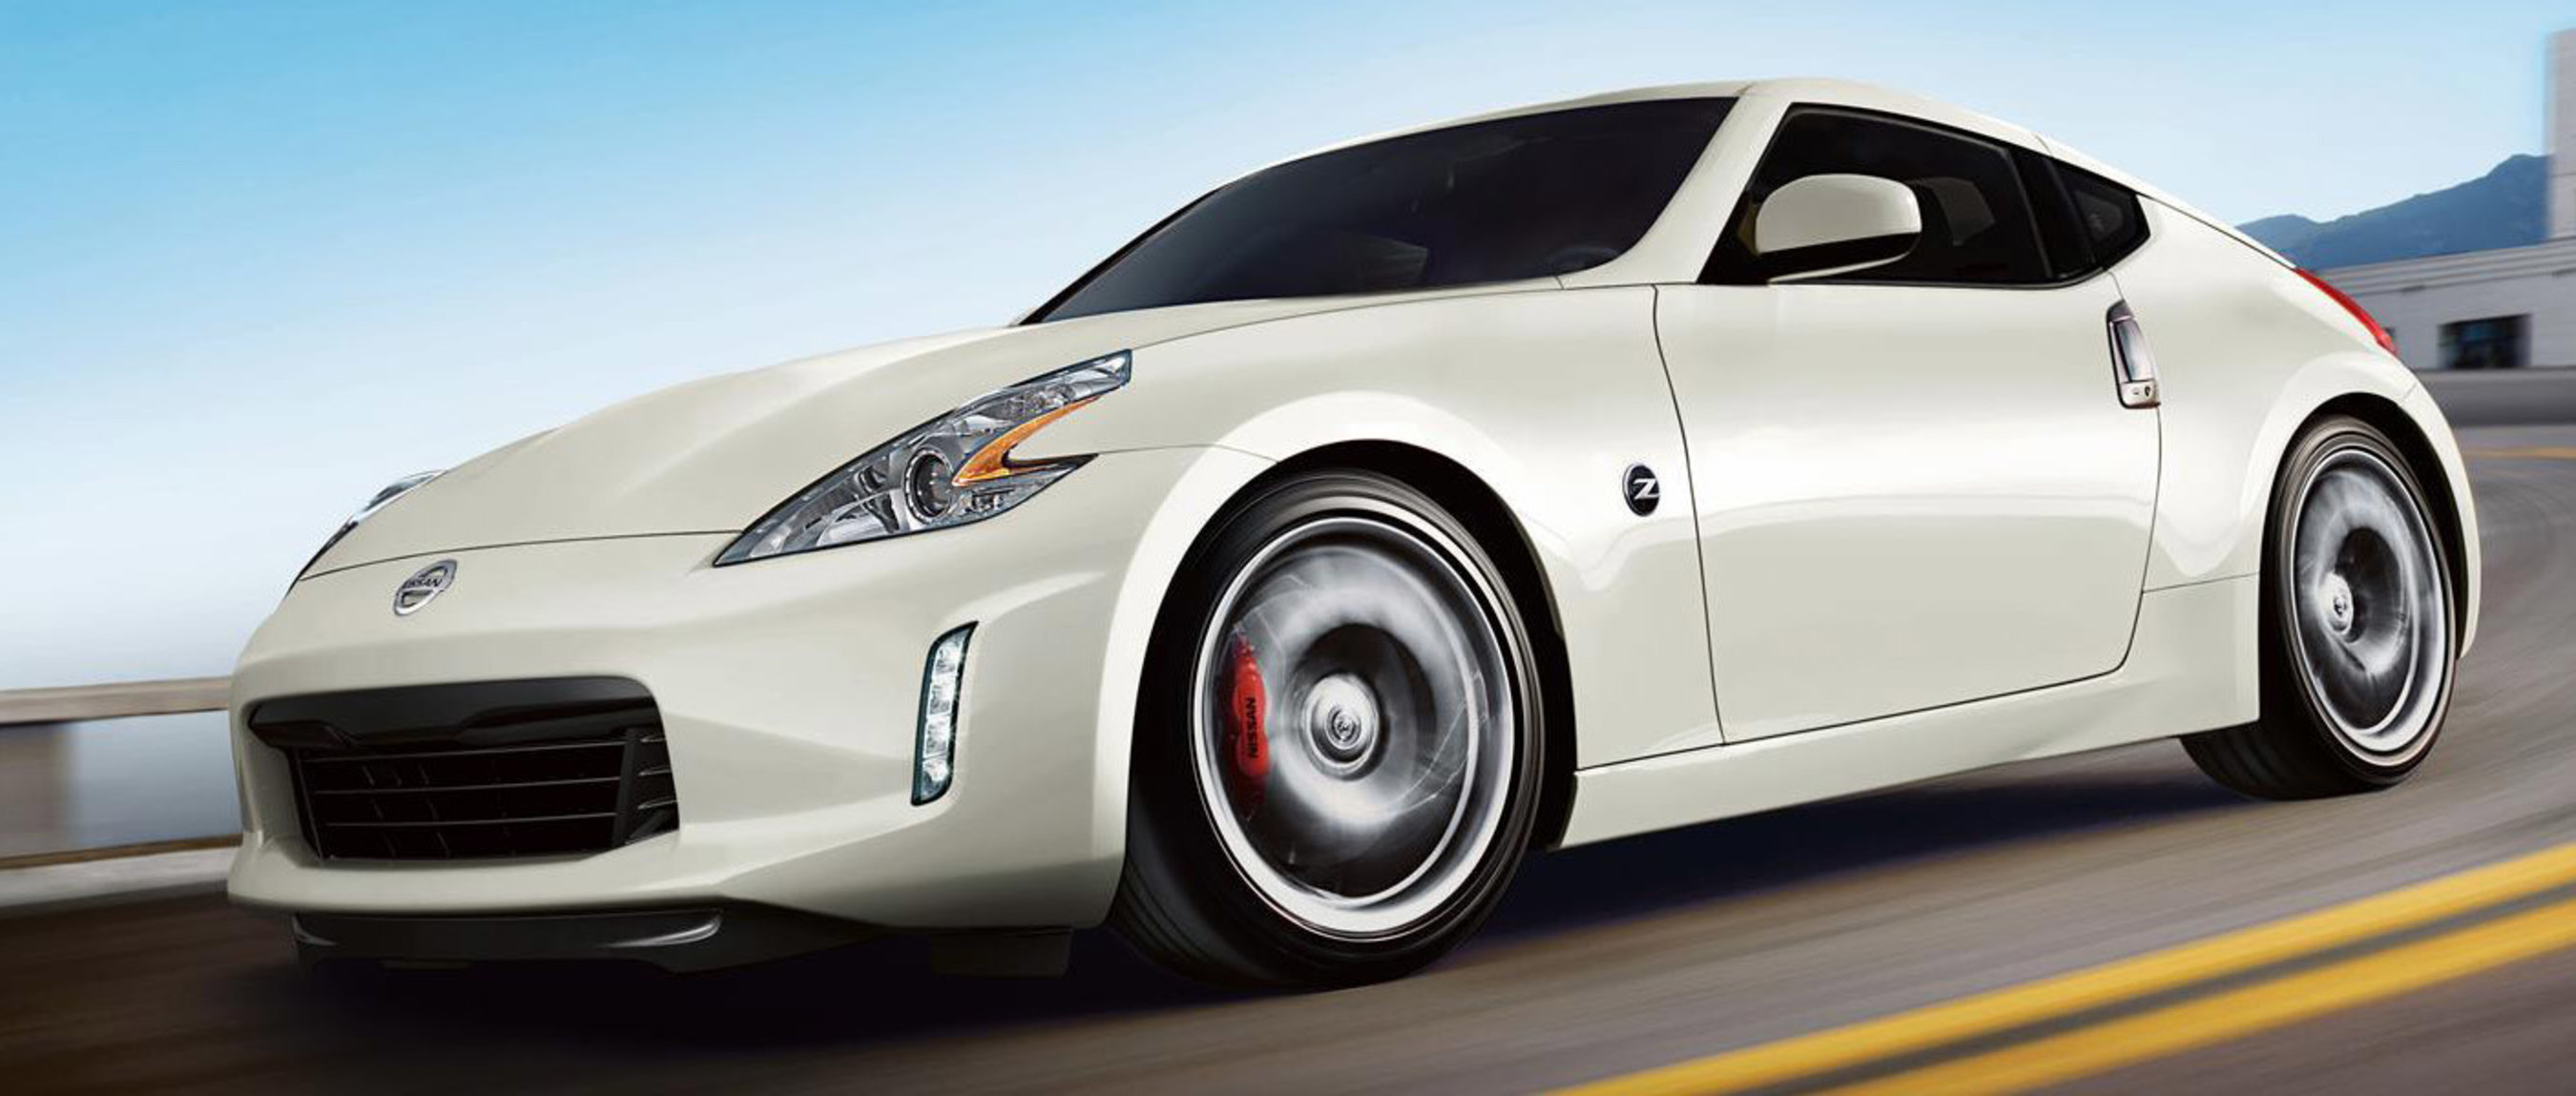 Boardman Nissan prepares drivers for introduction of the 2016 Nissan 370Z